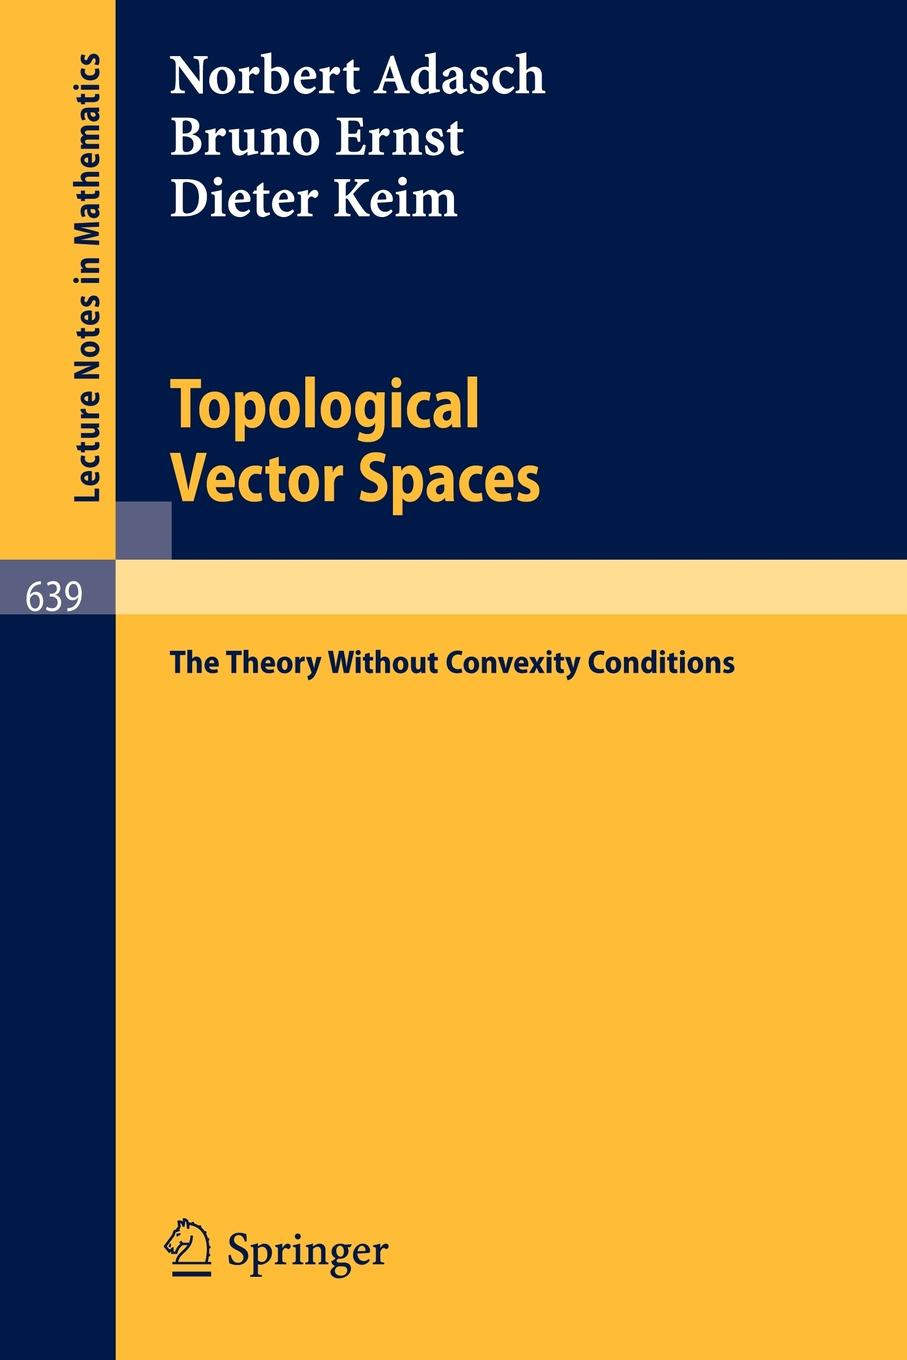 лучшая цена Norbert Adasch, Bruno Ernst, Dieter Keim Topological Vector Spaces. The Theory Without Convexity Conditions